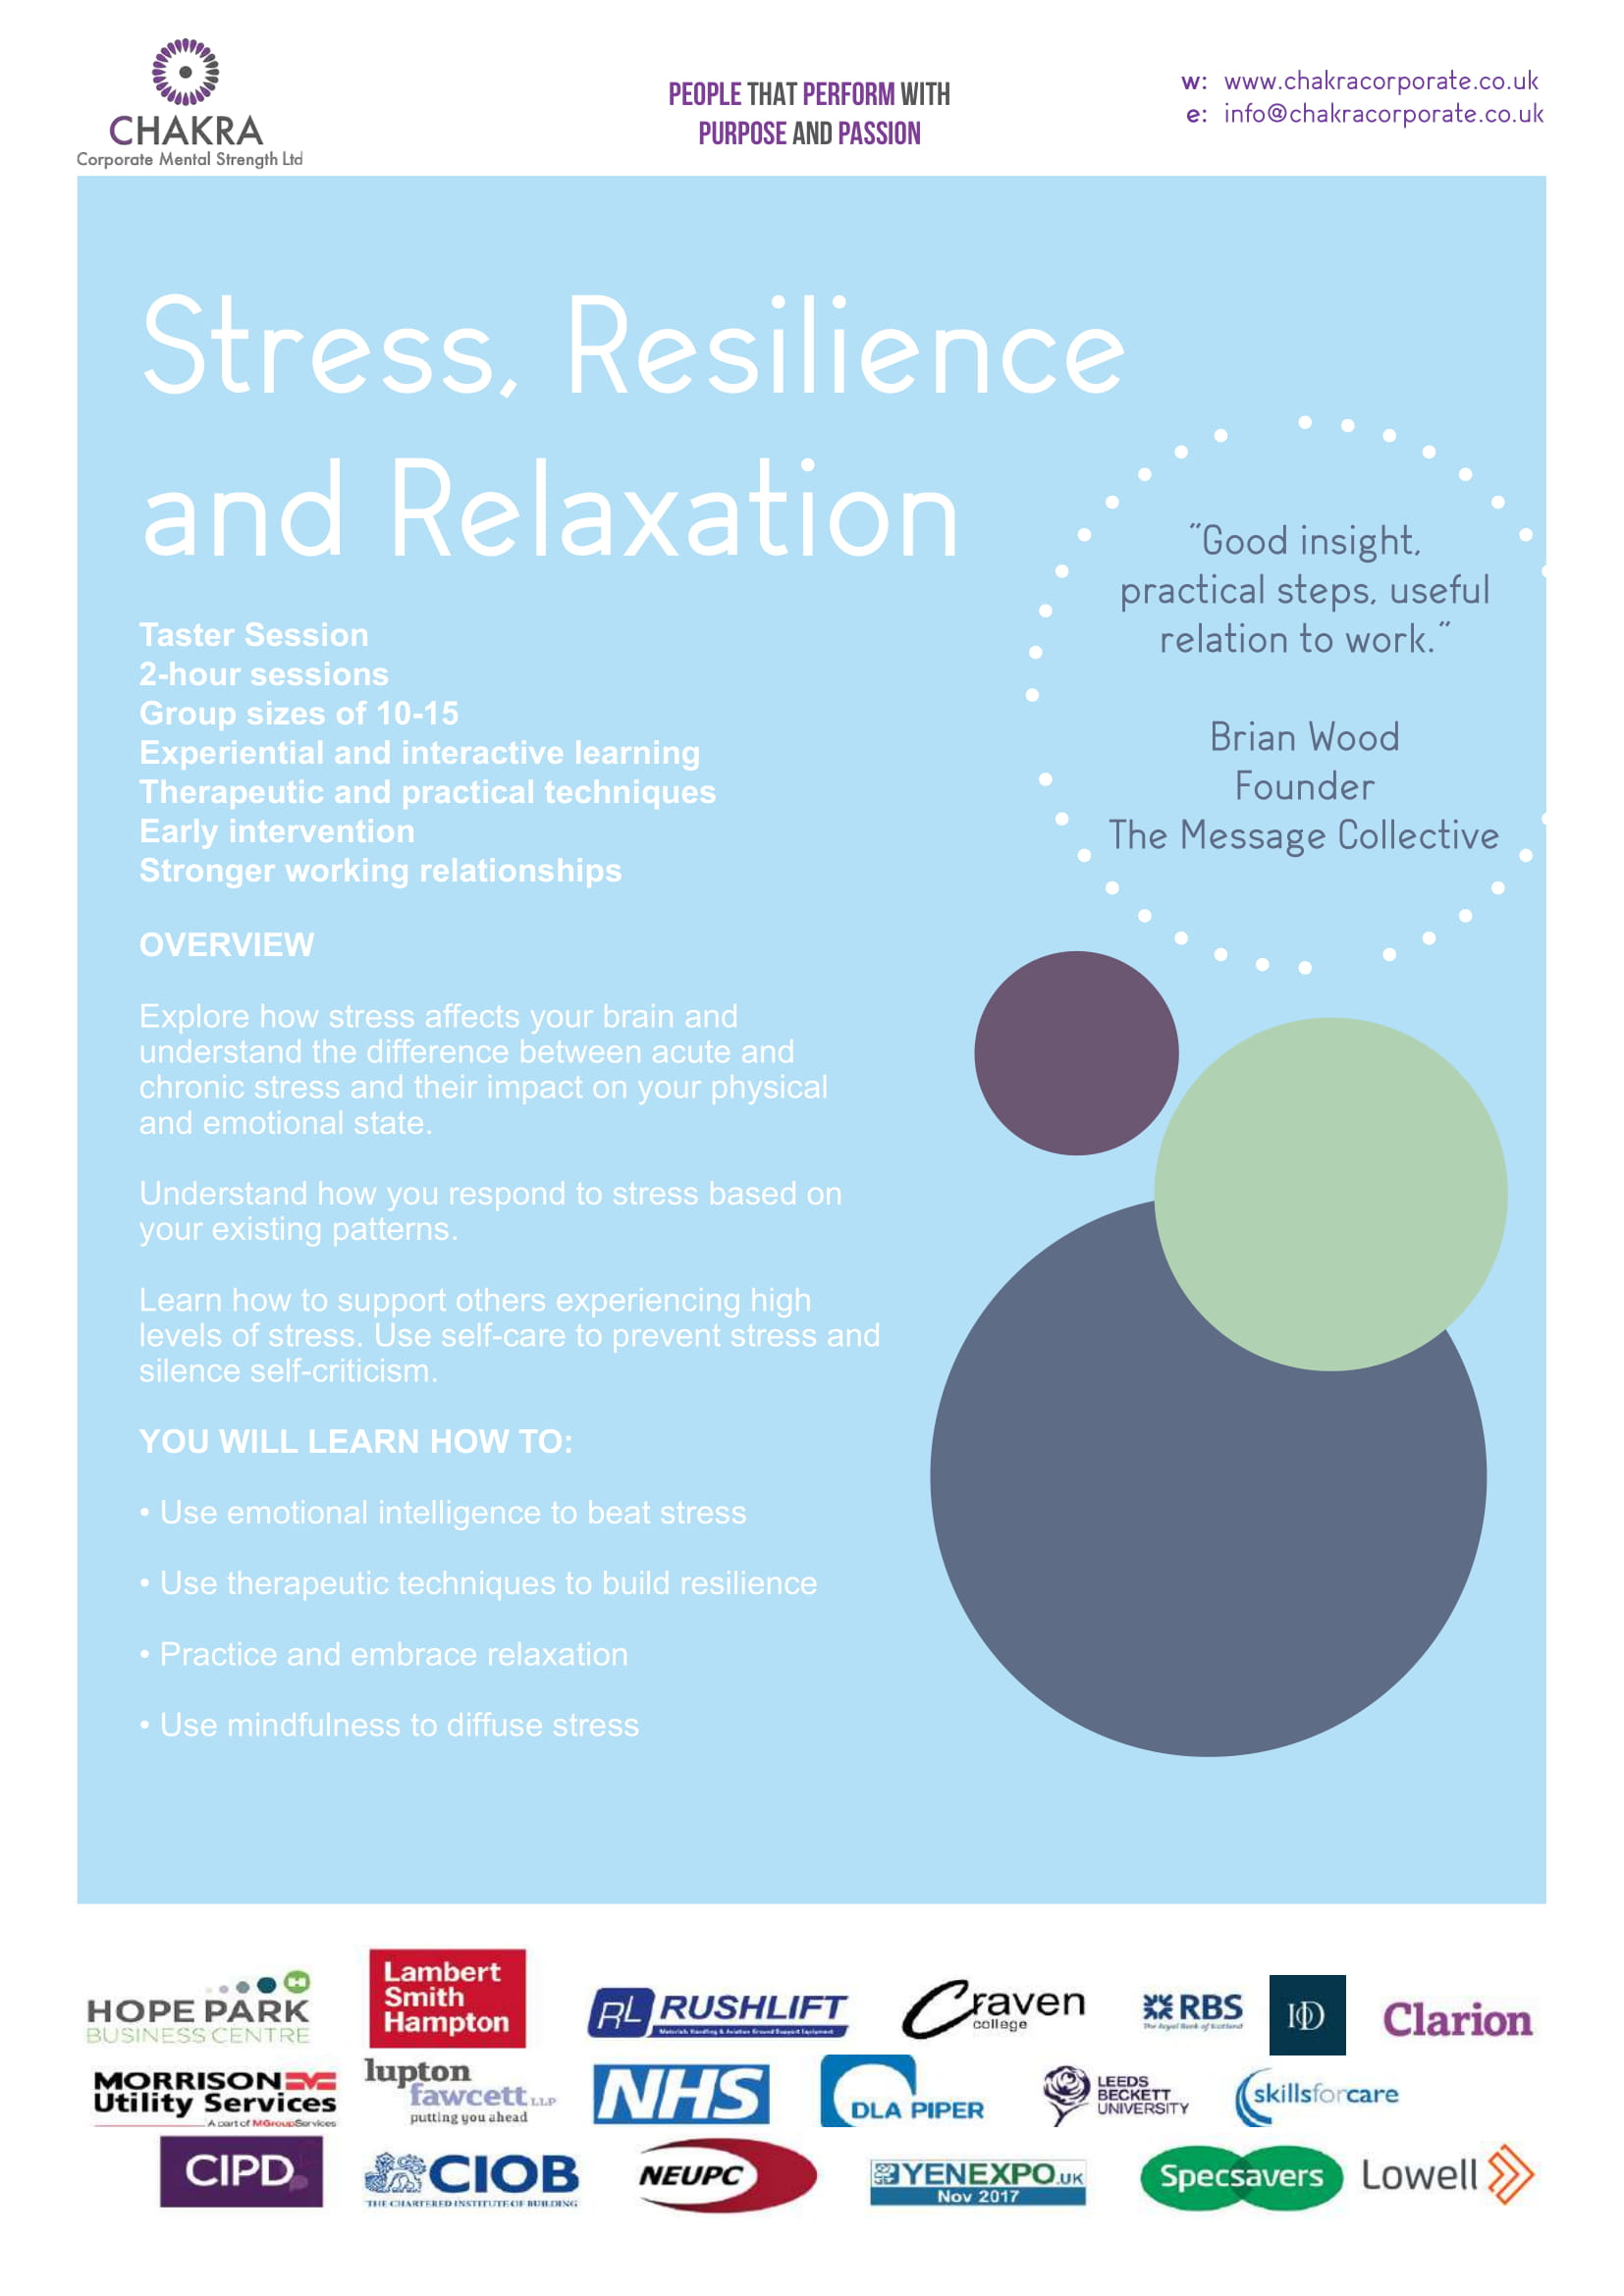 How Do Acute And Chronic Stress Impact >> Stress Resilience And Relaxation Old Chakra